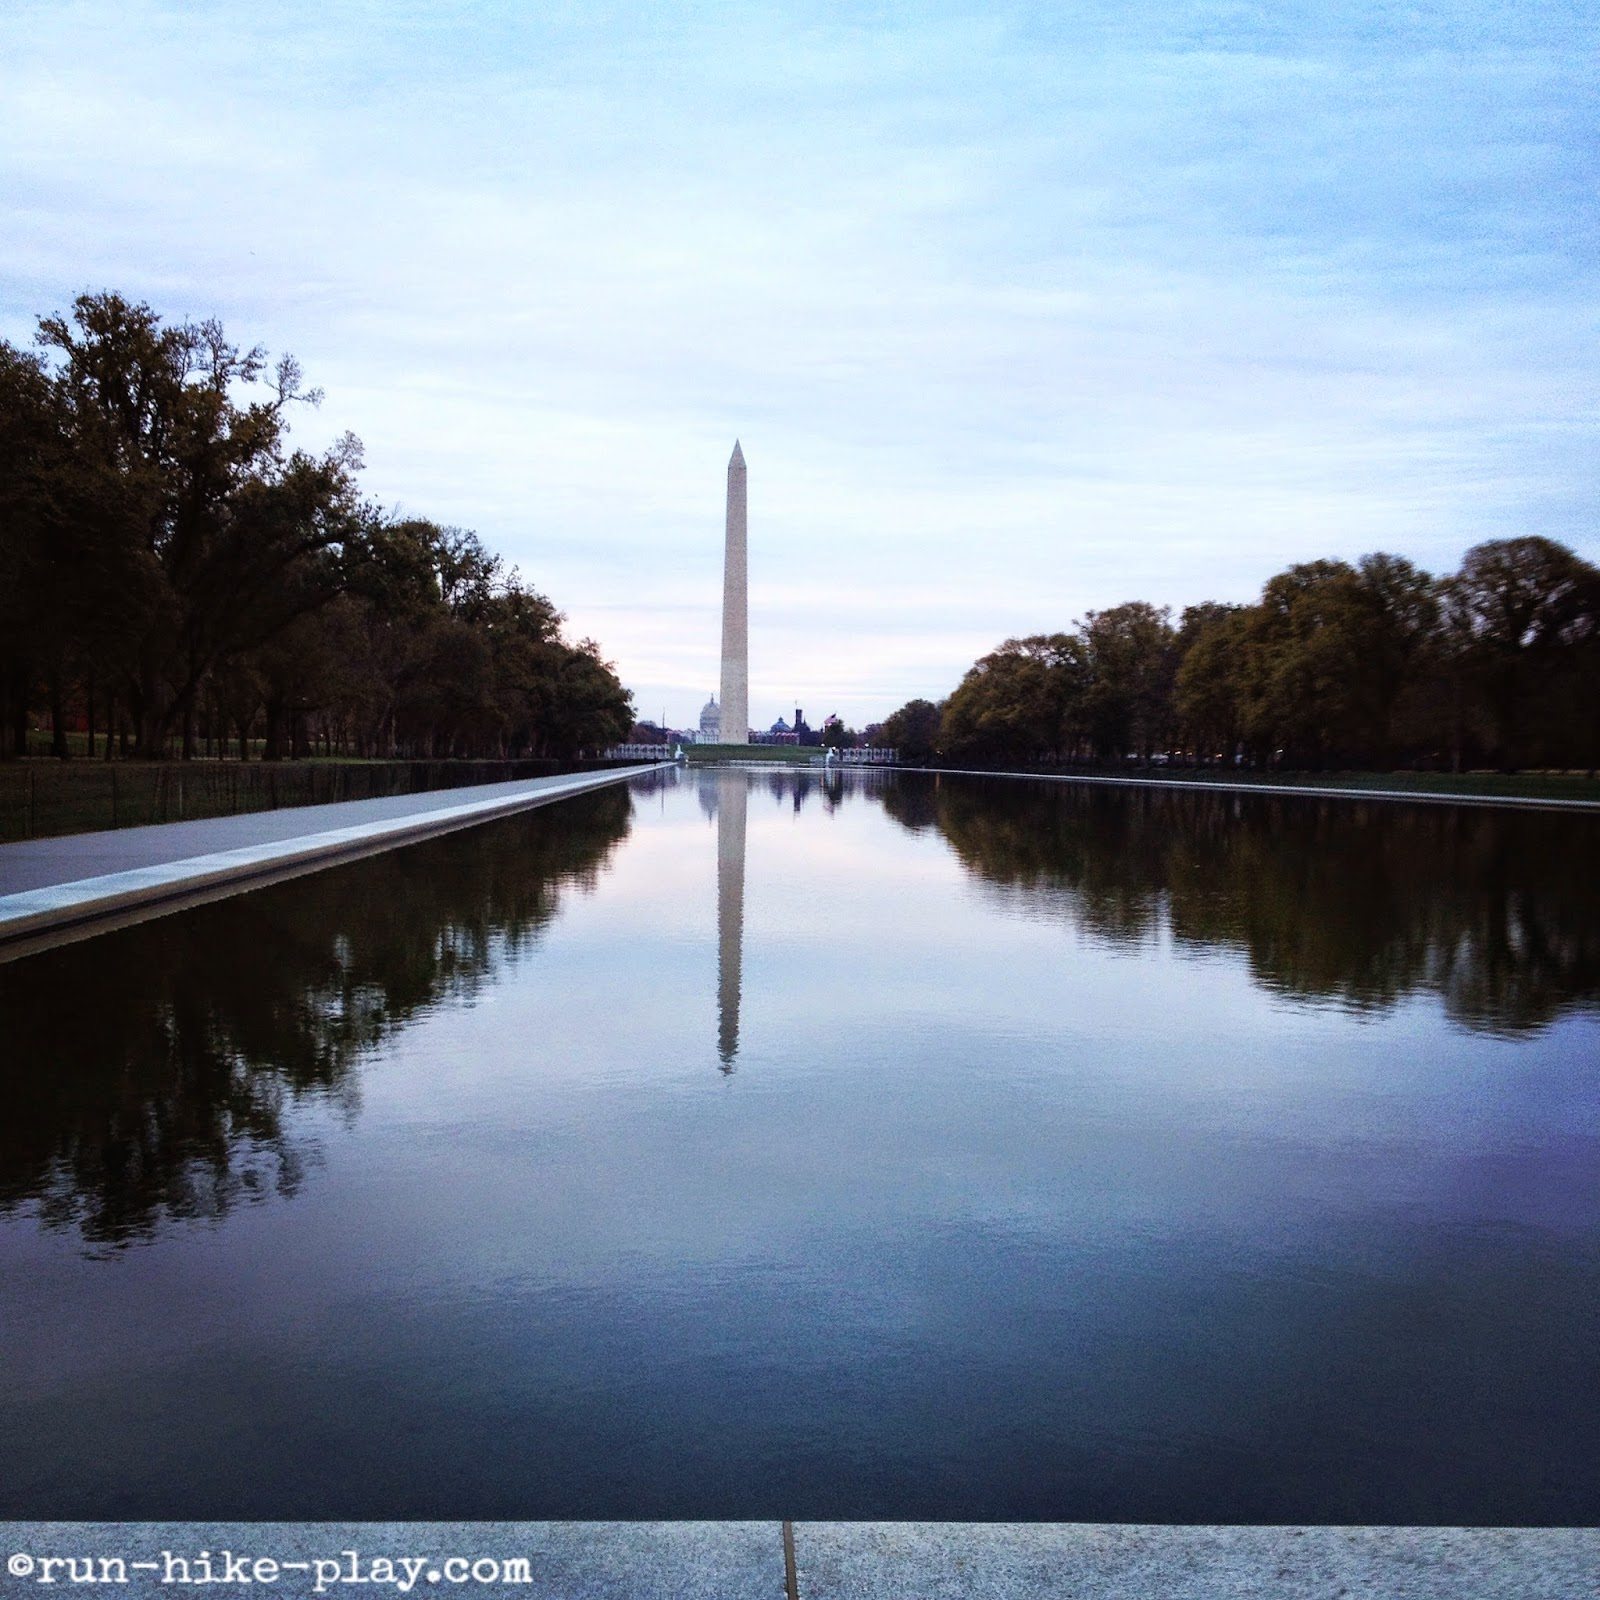 Washington Monument with reflecting pool